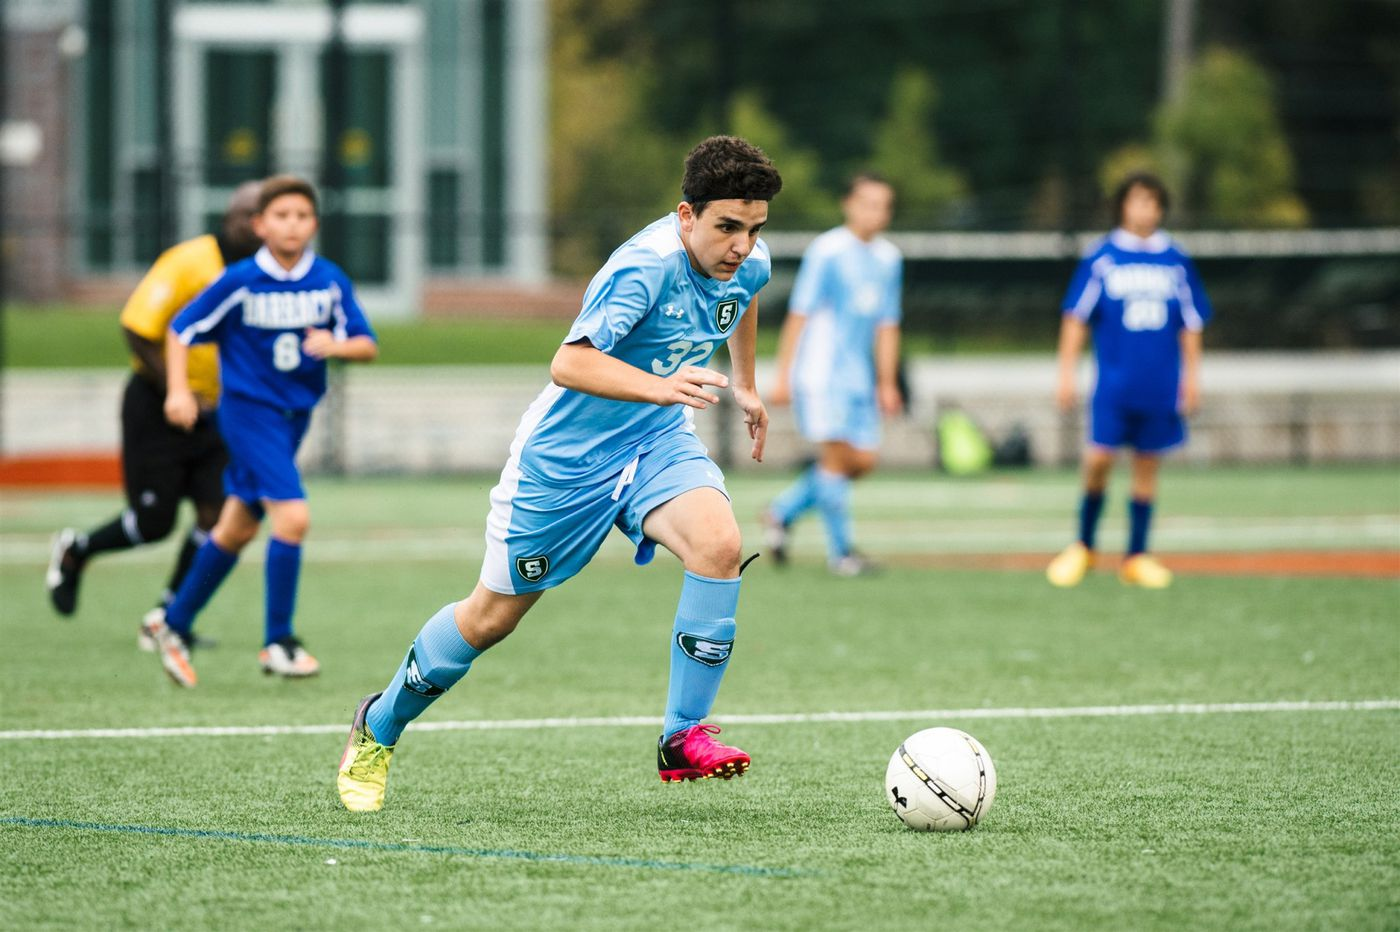 What's the latest for treating concussions in kids?